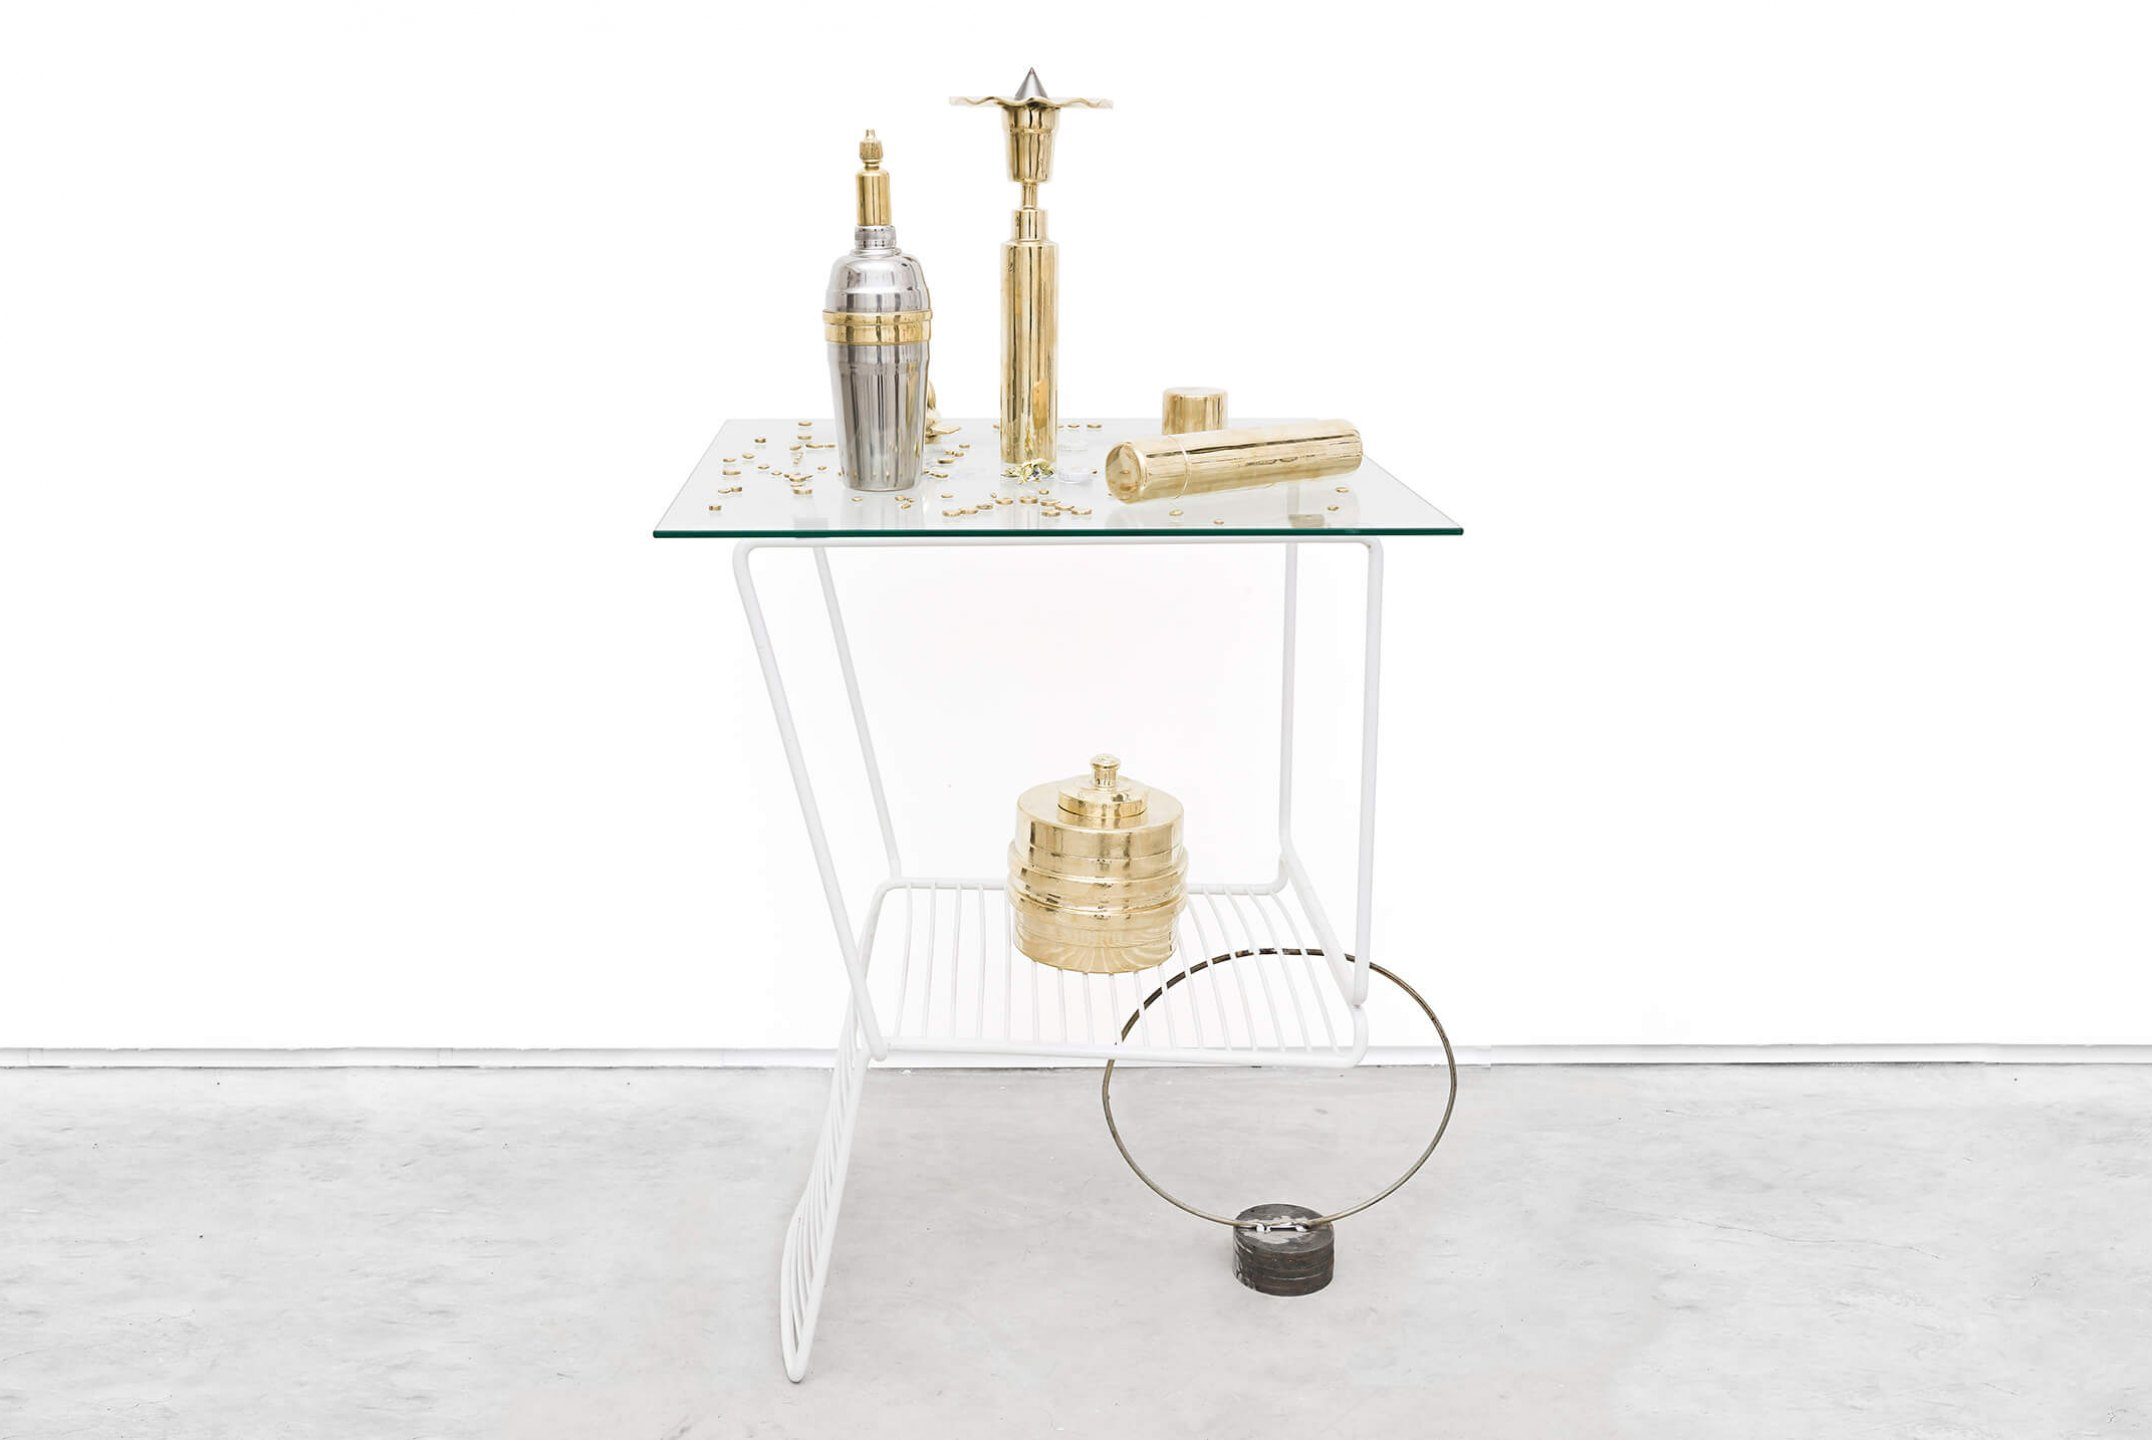 Adriano Costa, <em>Chair When Coffee Table / Little Trophies</em>, 2015, chair, glass top, metal ring and pieces of iron / polished brass knickknacks and aluminum shaker, 113 × 60 × 60 cm - Mendes Wood DM